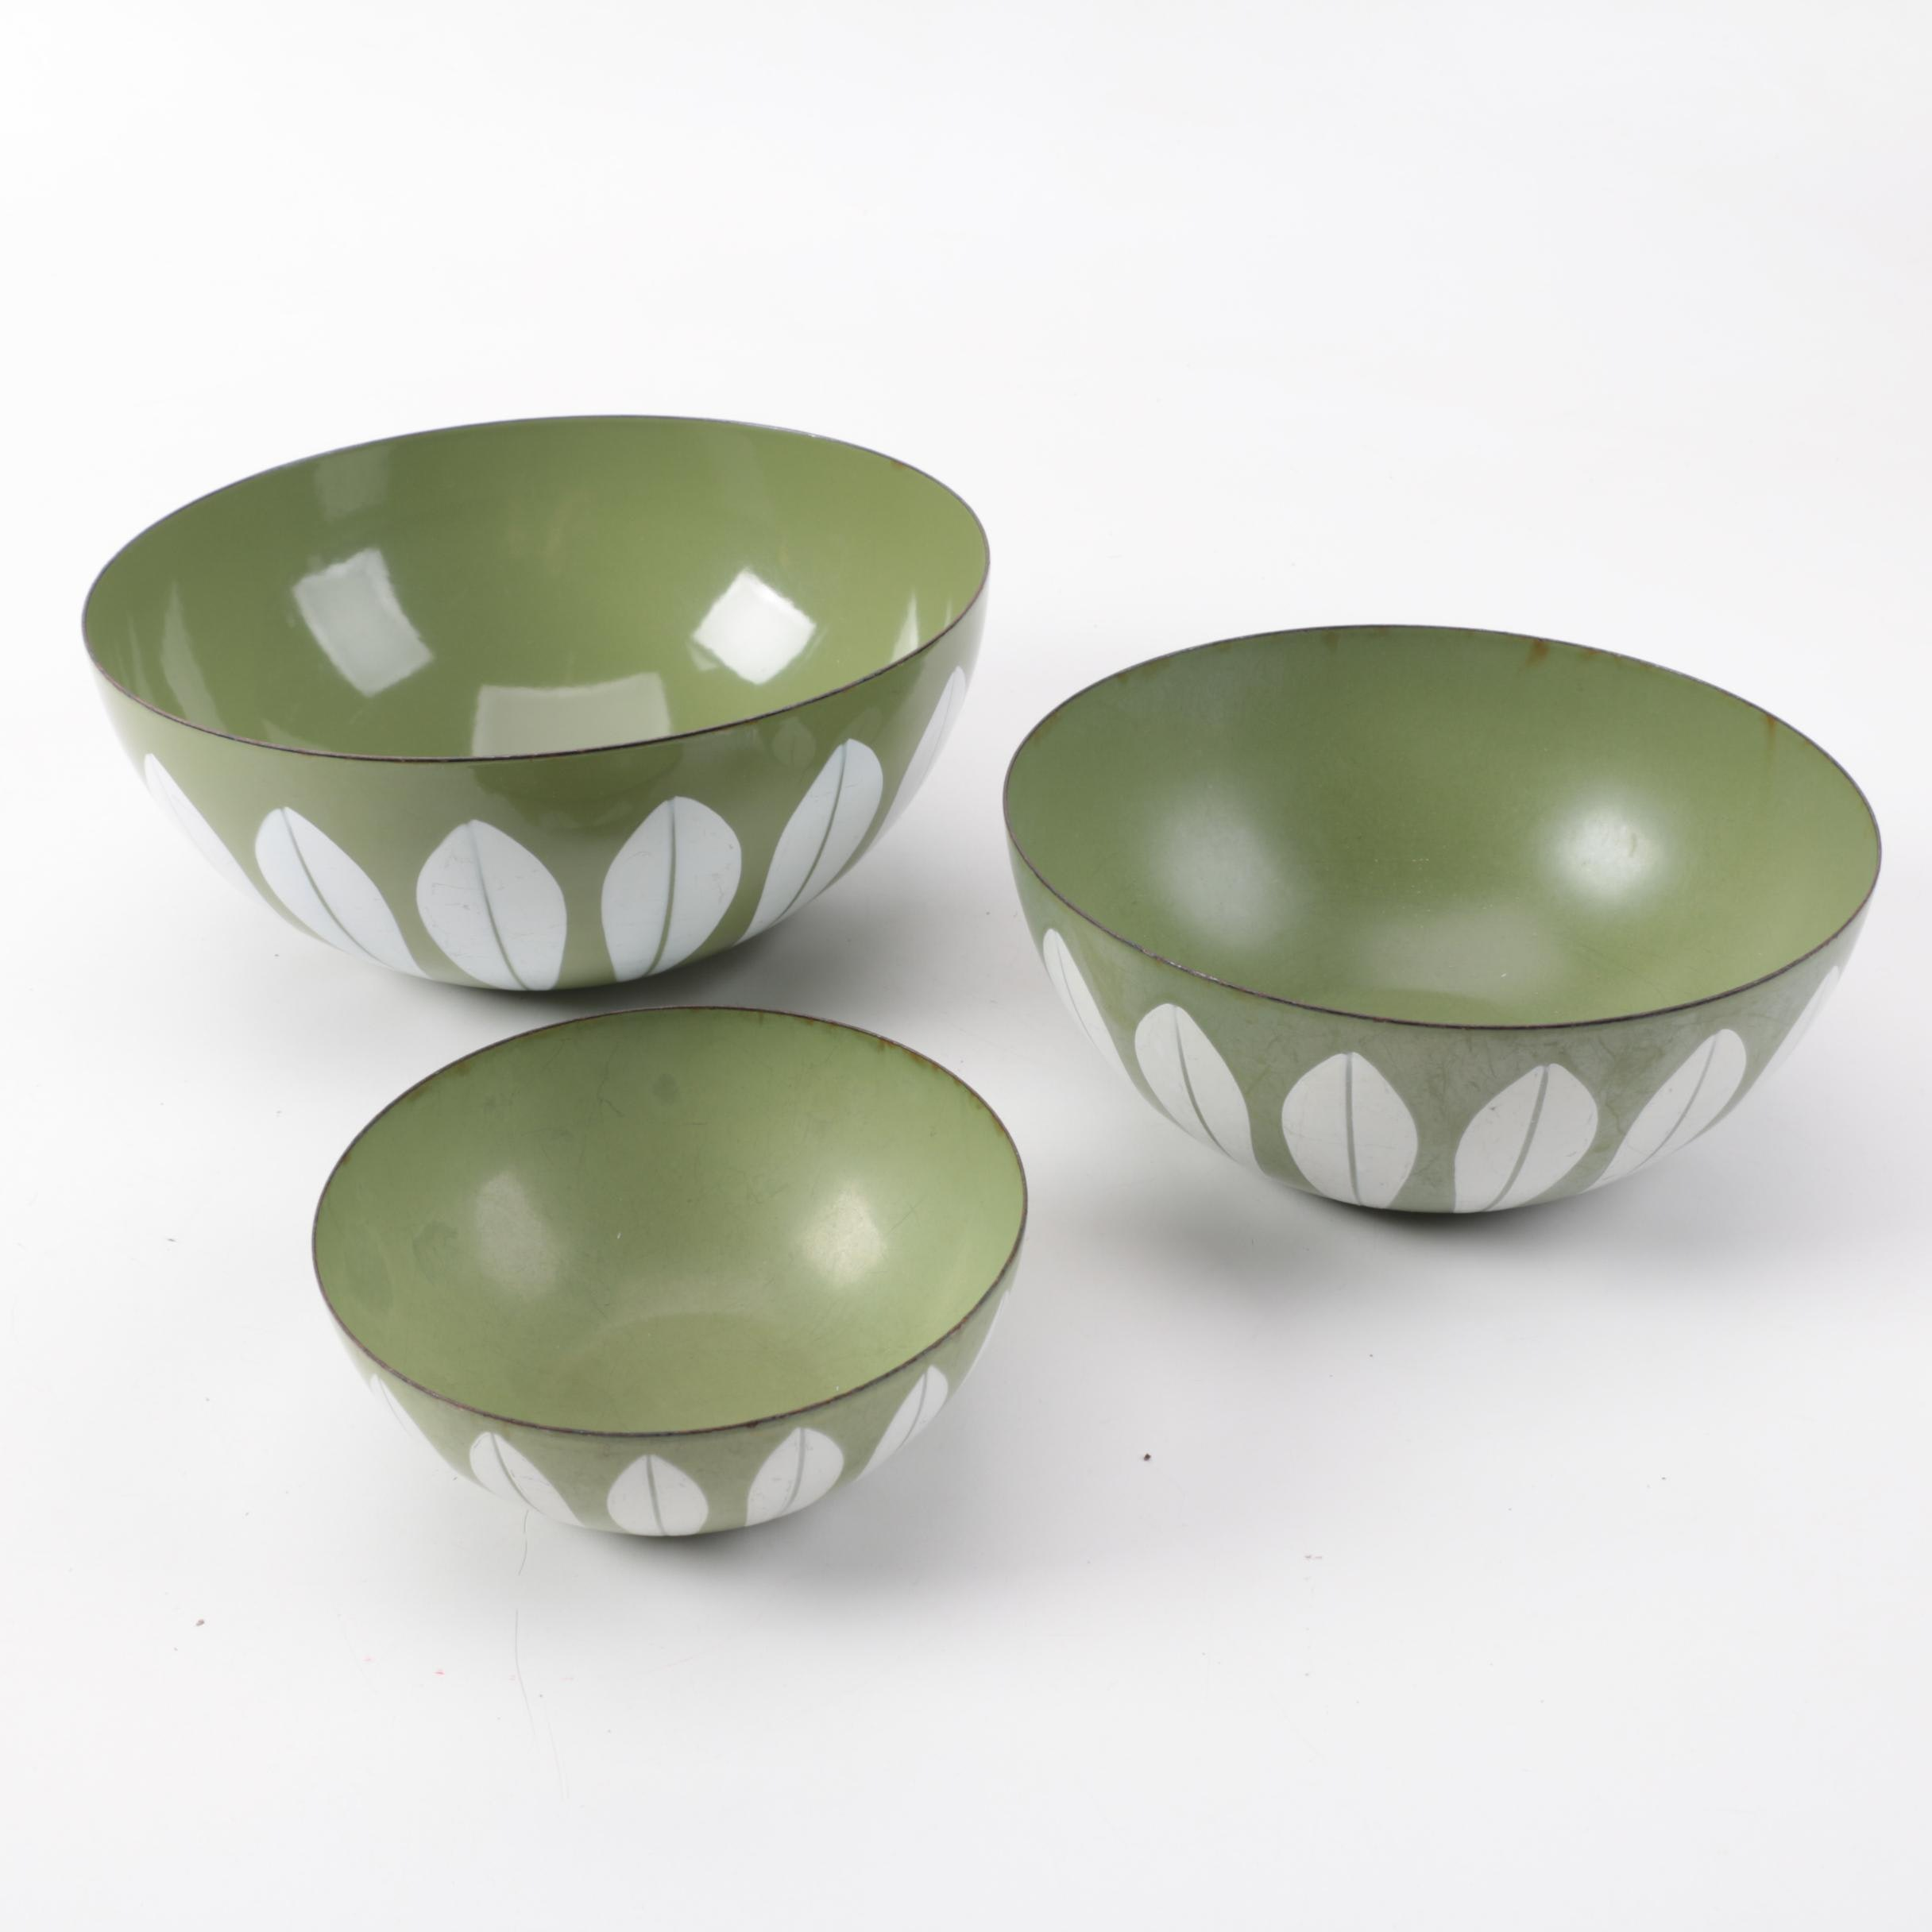 "Mid Century Modern Cathrineholm ""Lotus"" Enamel Bowl Set"